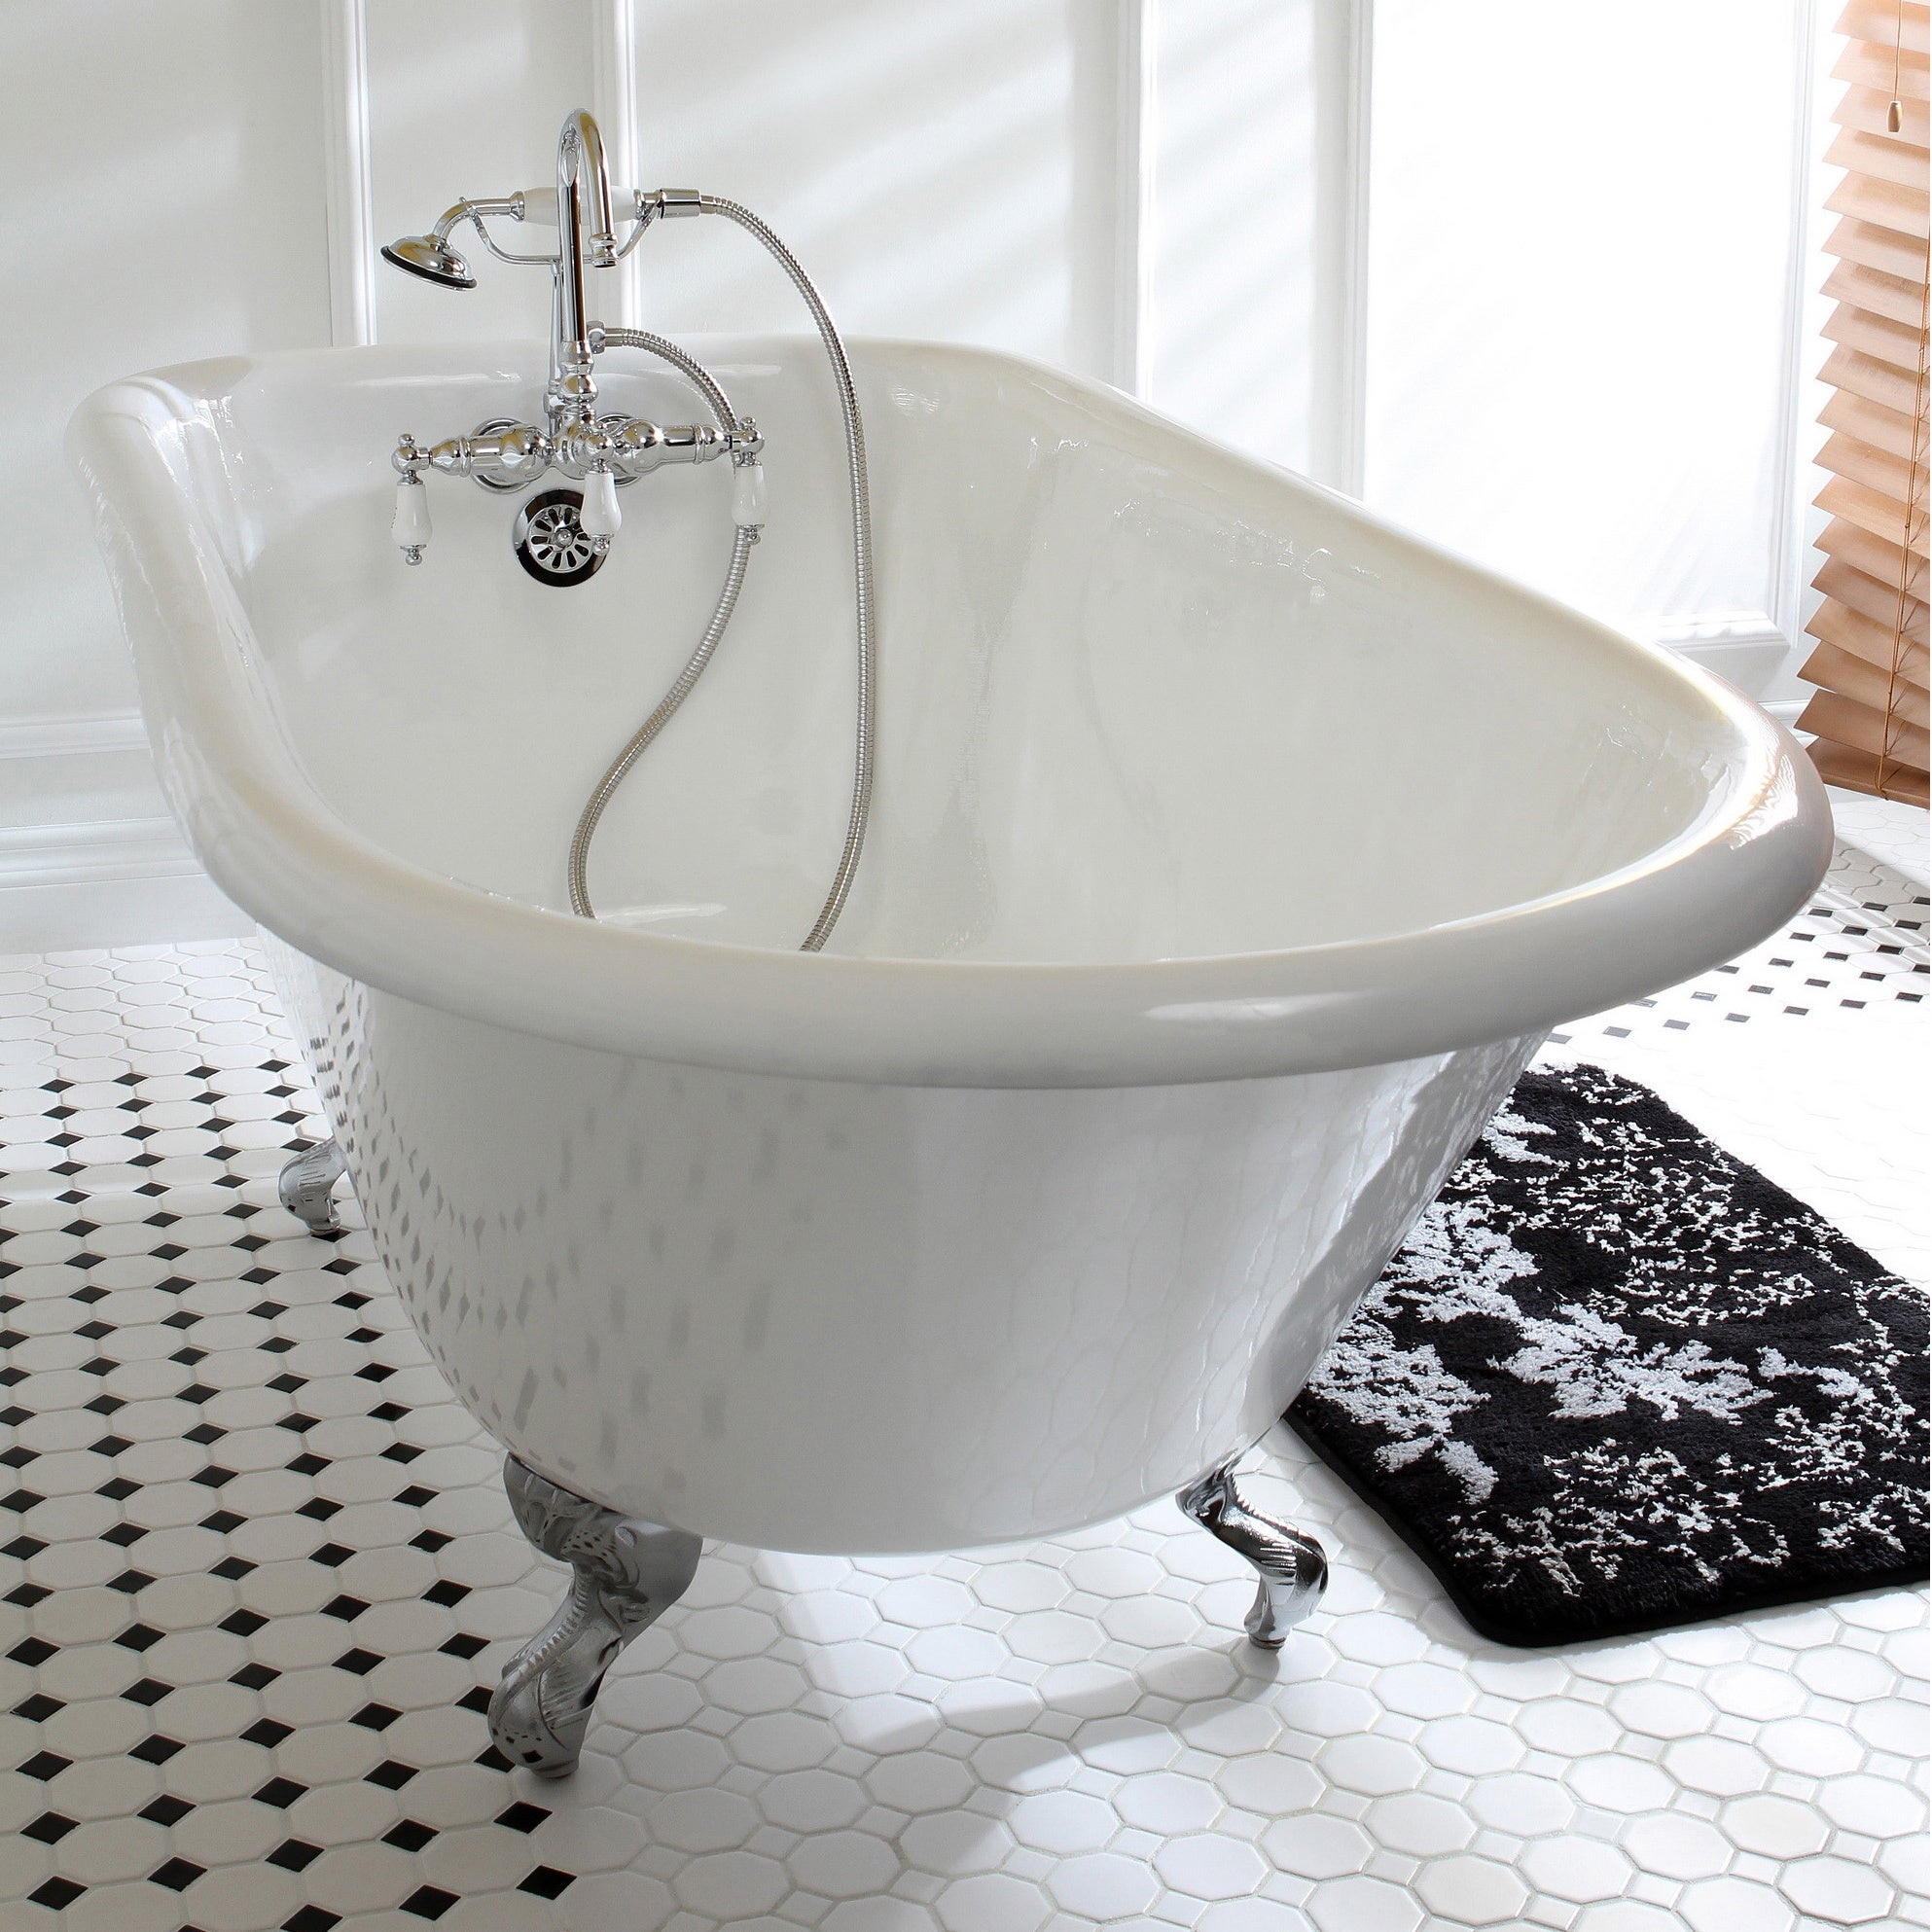 Clic Roll Top 60 Inch Cast Iron Clawfoot Tub With Wall Drilling